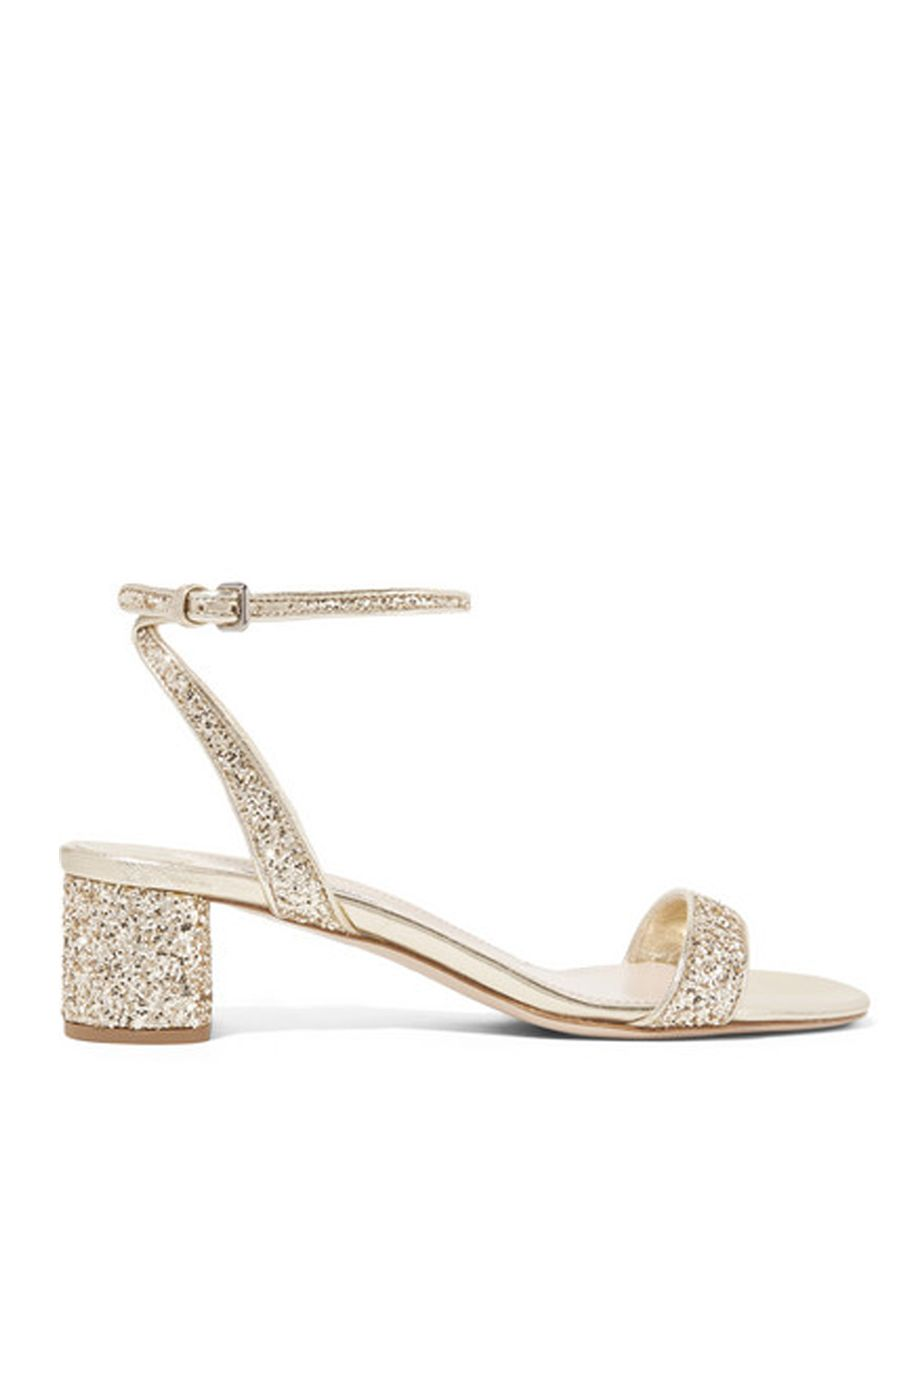 beab1c8411d Cute  amp  comfy wedding shoes to dance the night away in  http